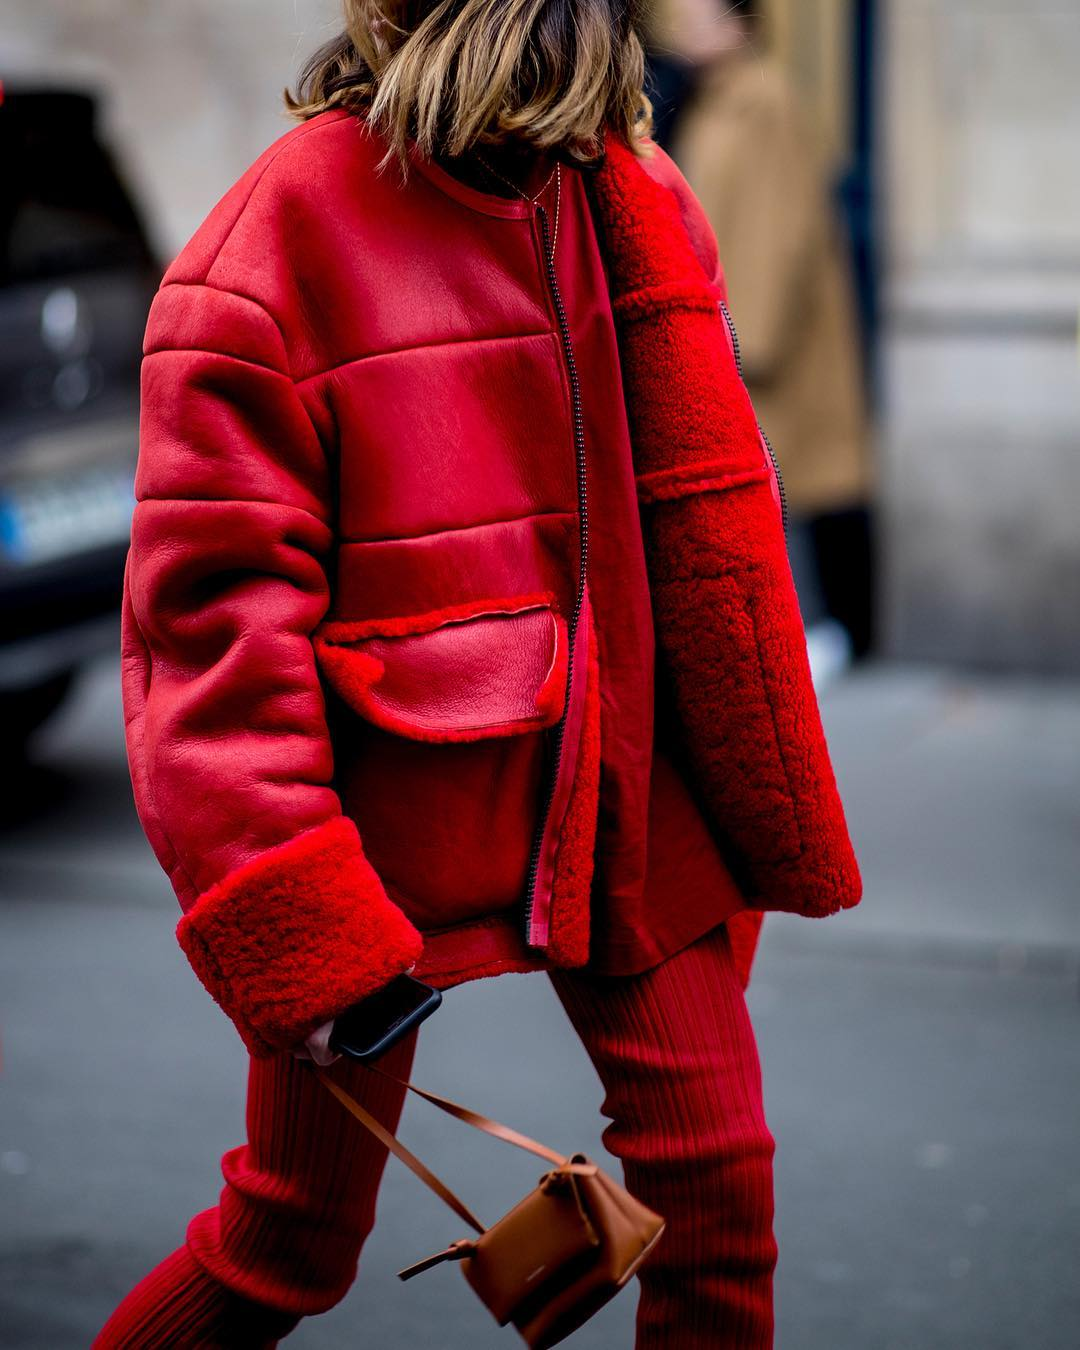 Standout Red Coats for Fall and Winter — @alexandraguerain Instagram Style